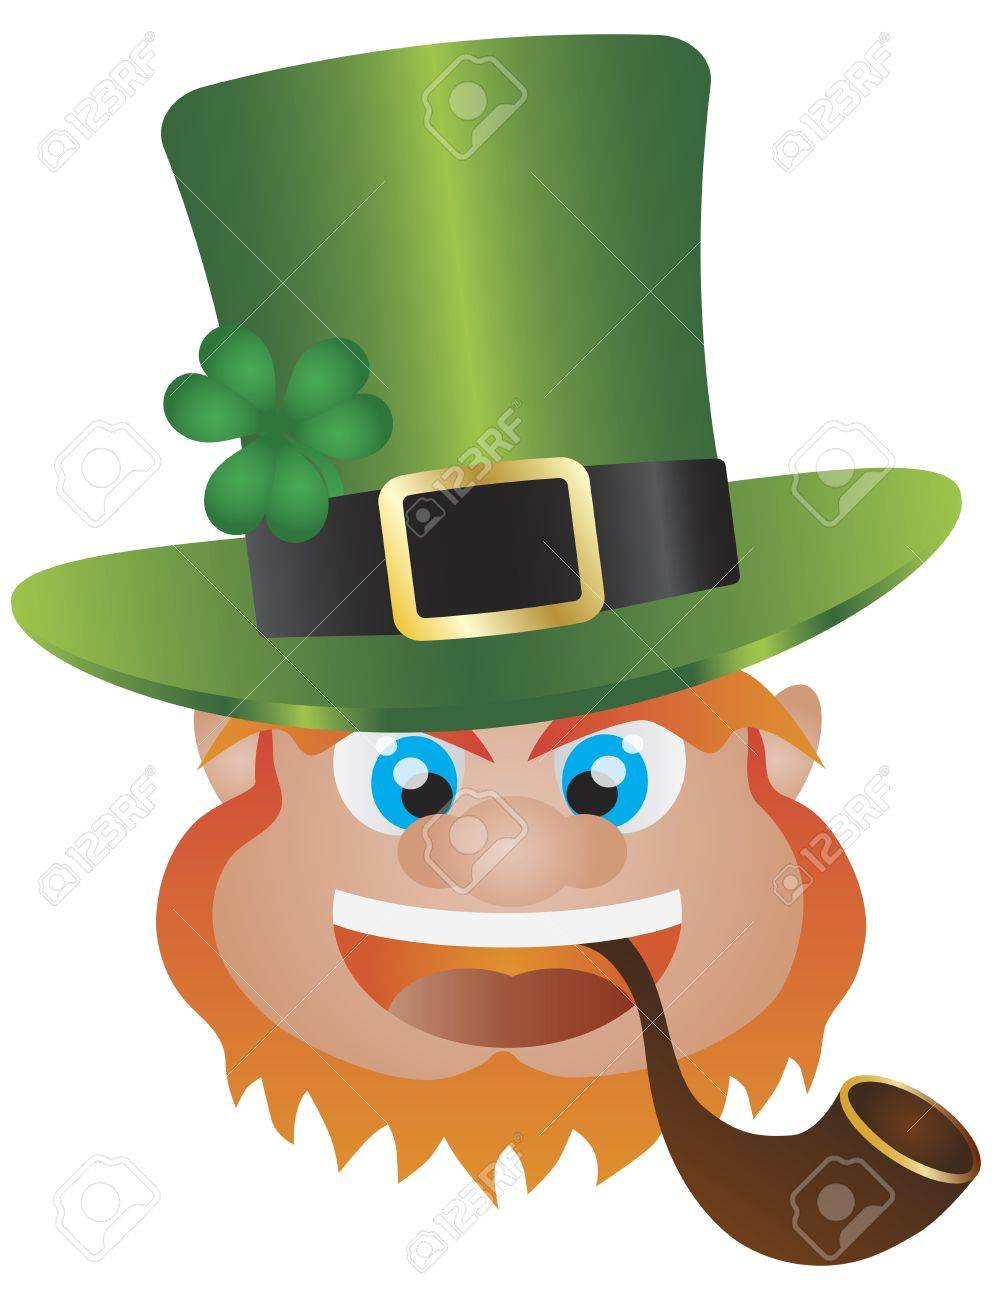 St Patricks Day Irish Leprechaun Head with Hat and Smoking Pipe Isolated on White Background Illustration Stock Vector - 17844518